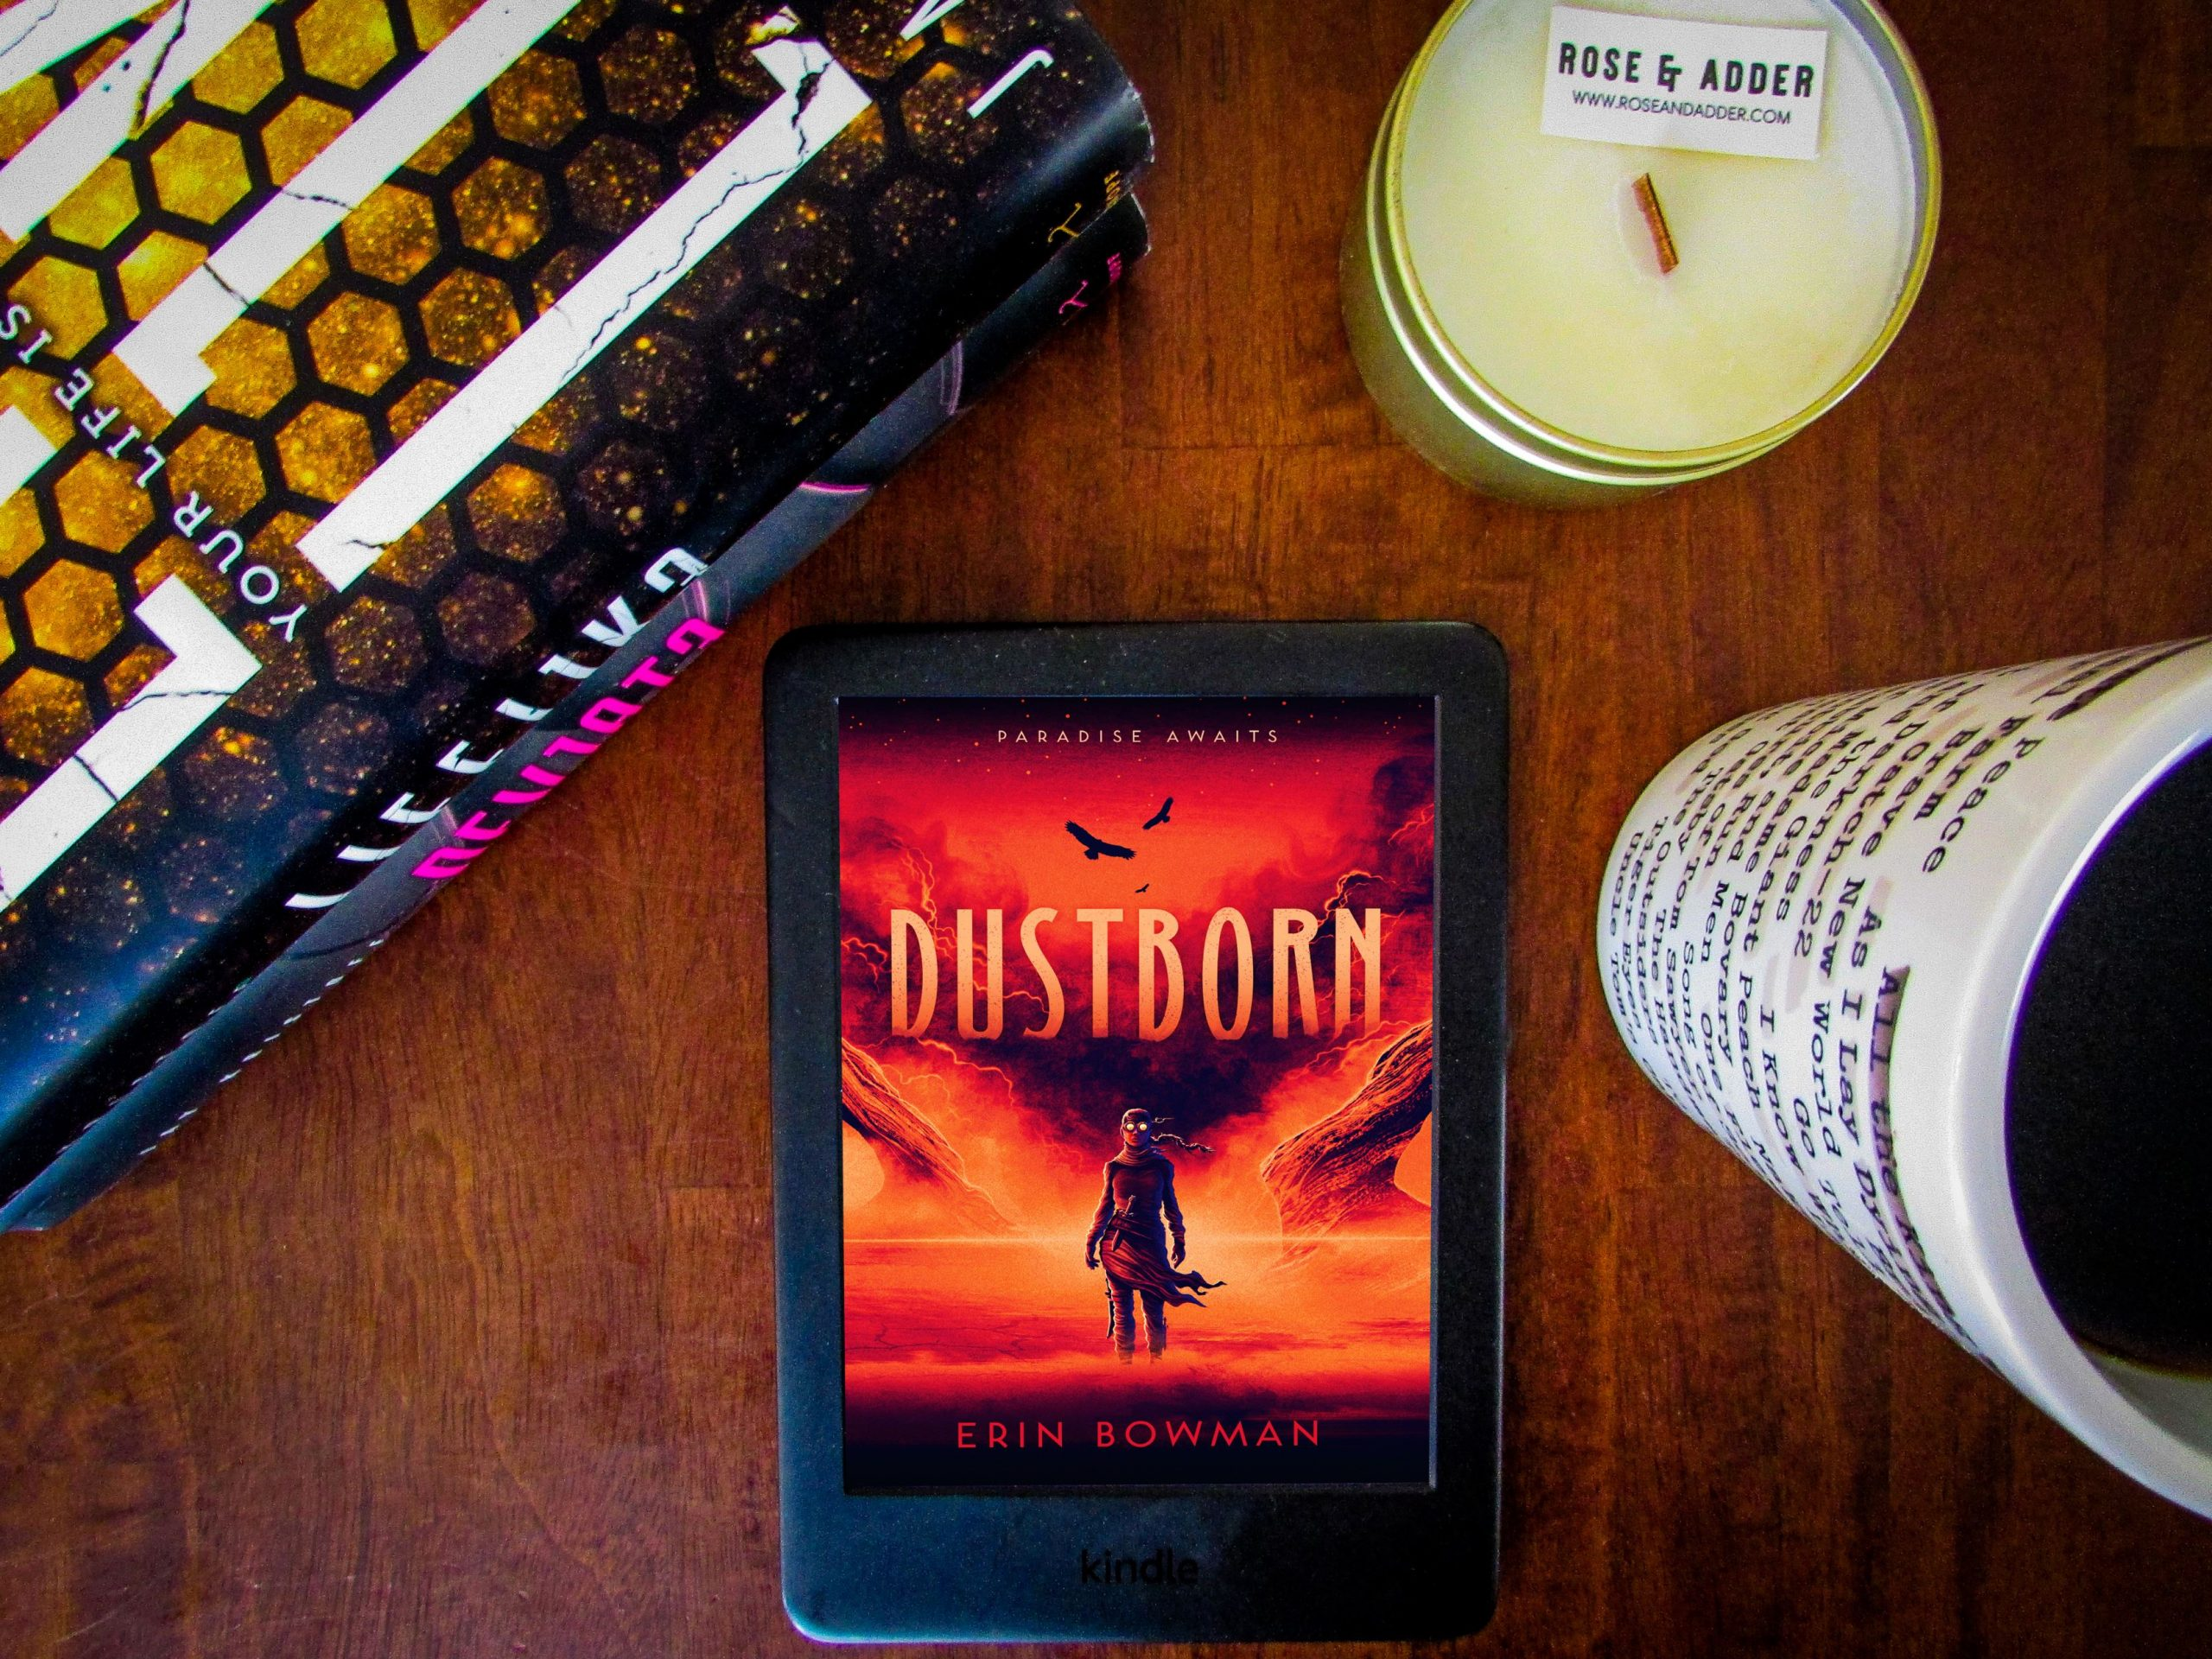 Dustborn by Erin Bowman